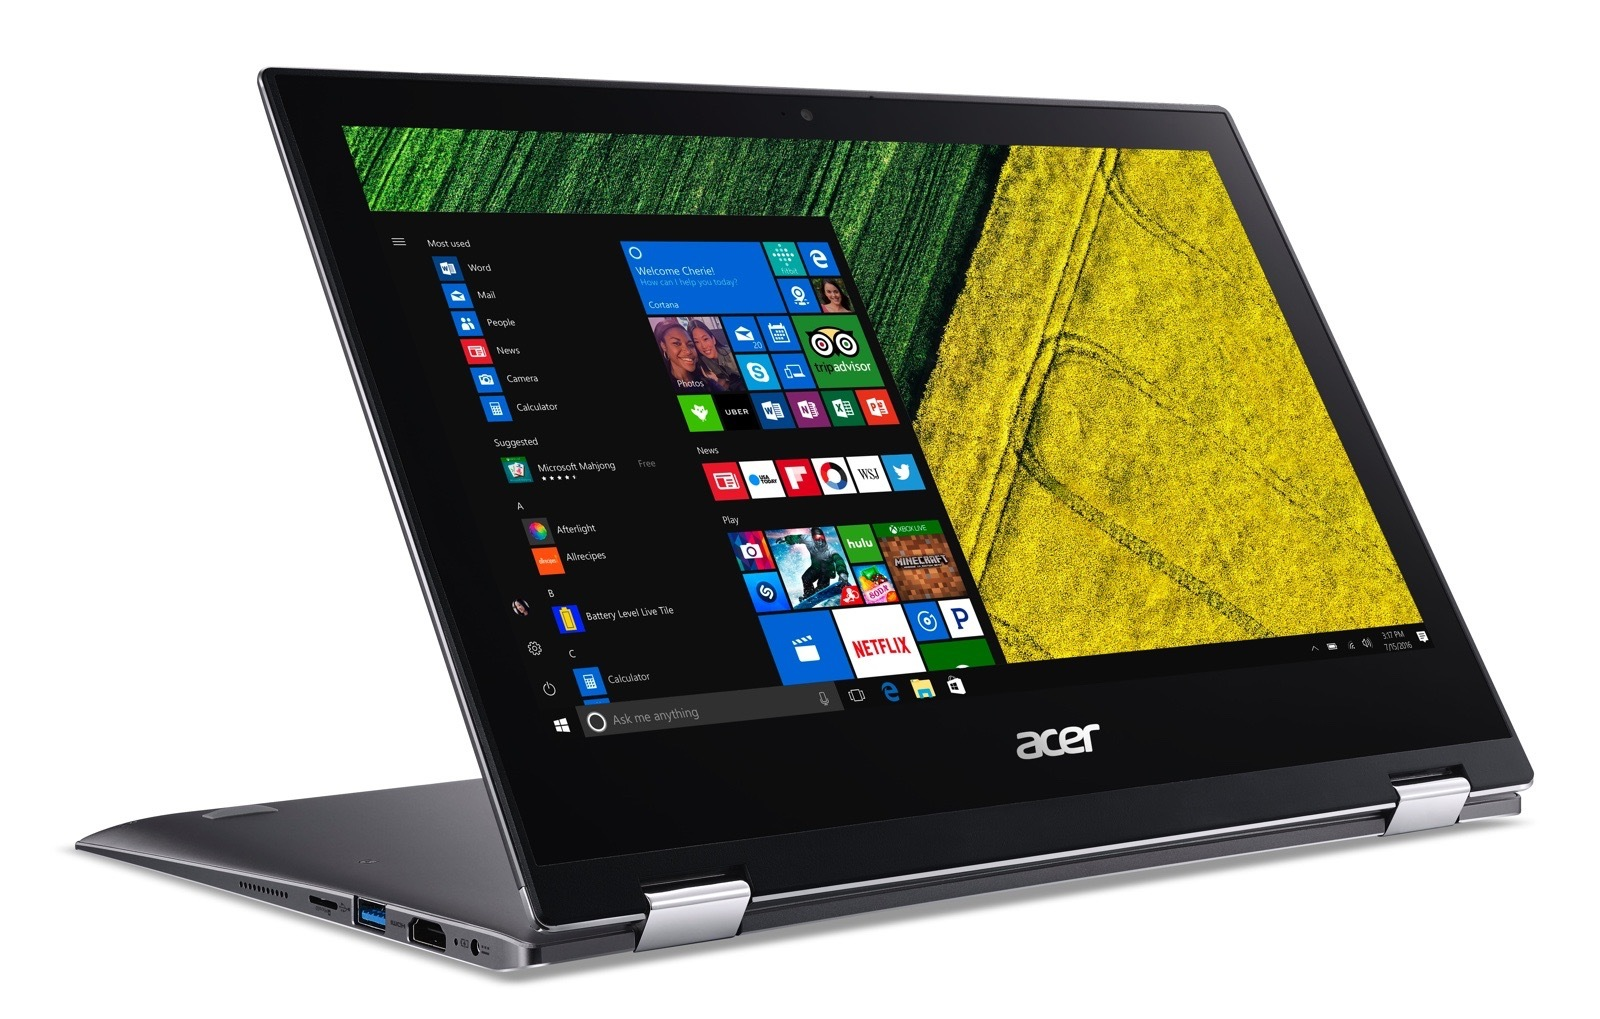 Like Its Predecessor Users Will Be Able To Prop Up The New Acer Spin 1 In Tent Display Or Tablet Mode Thanks Return Of 360 Degree Hinge